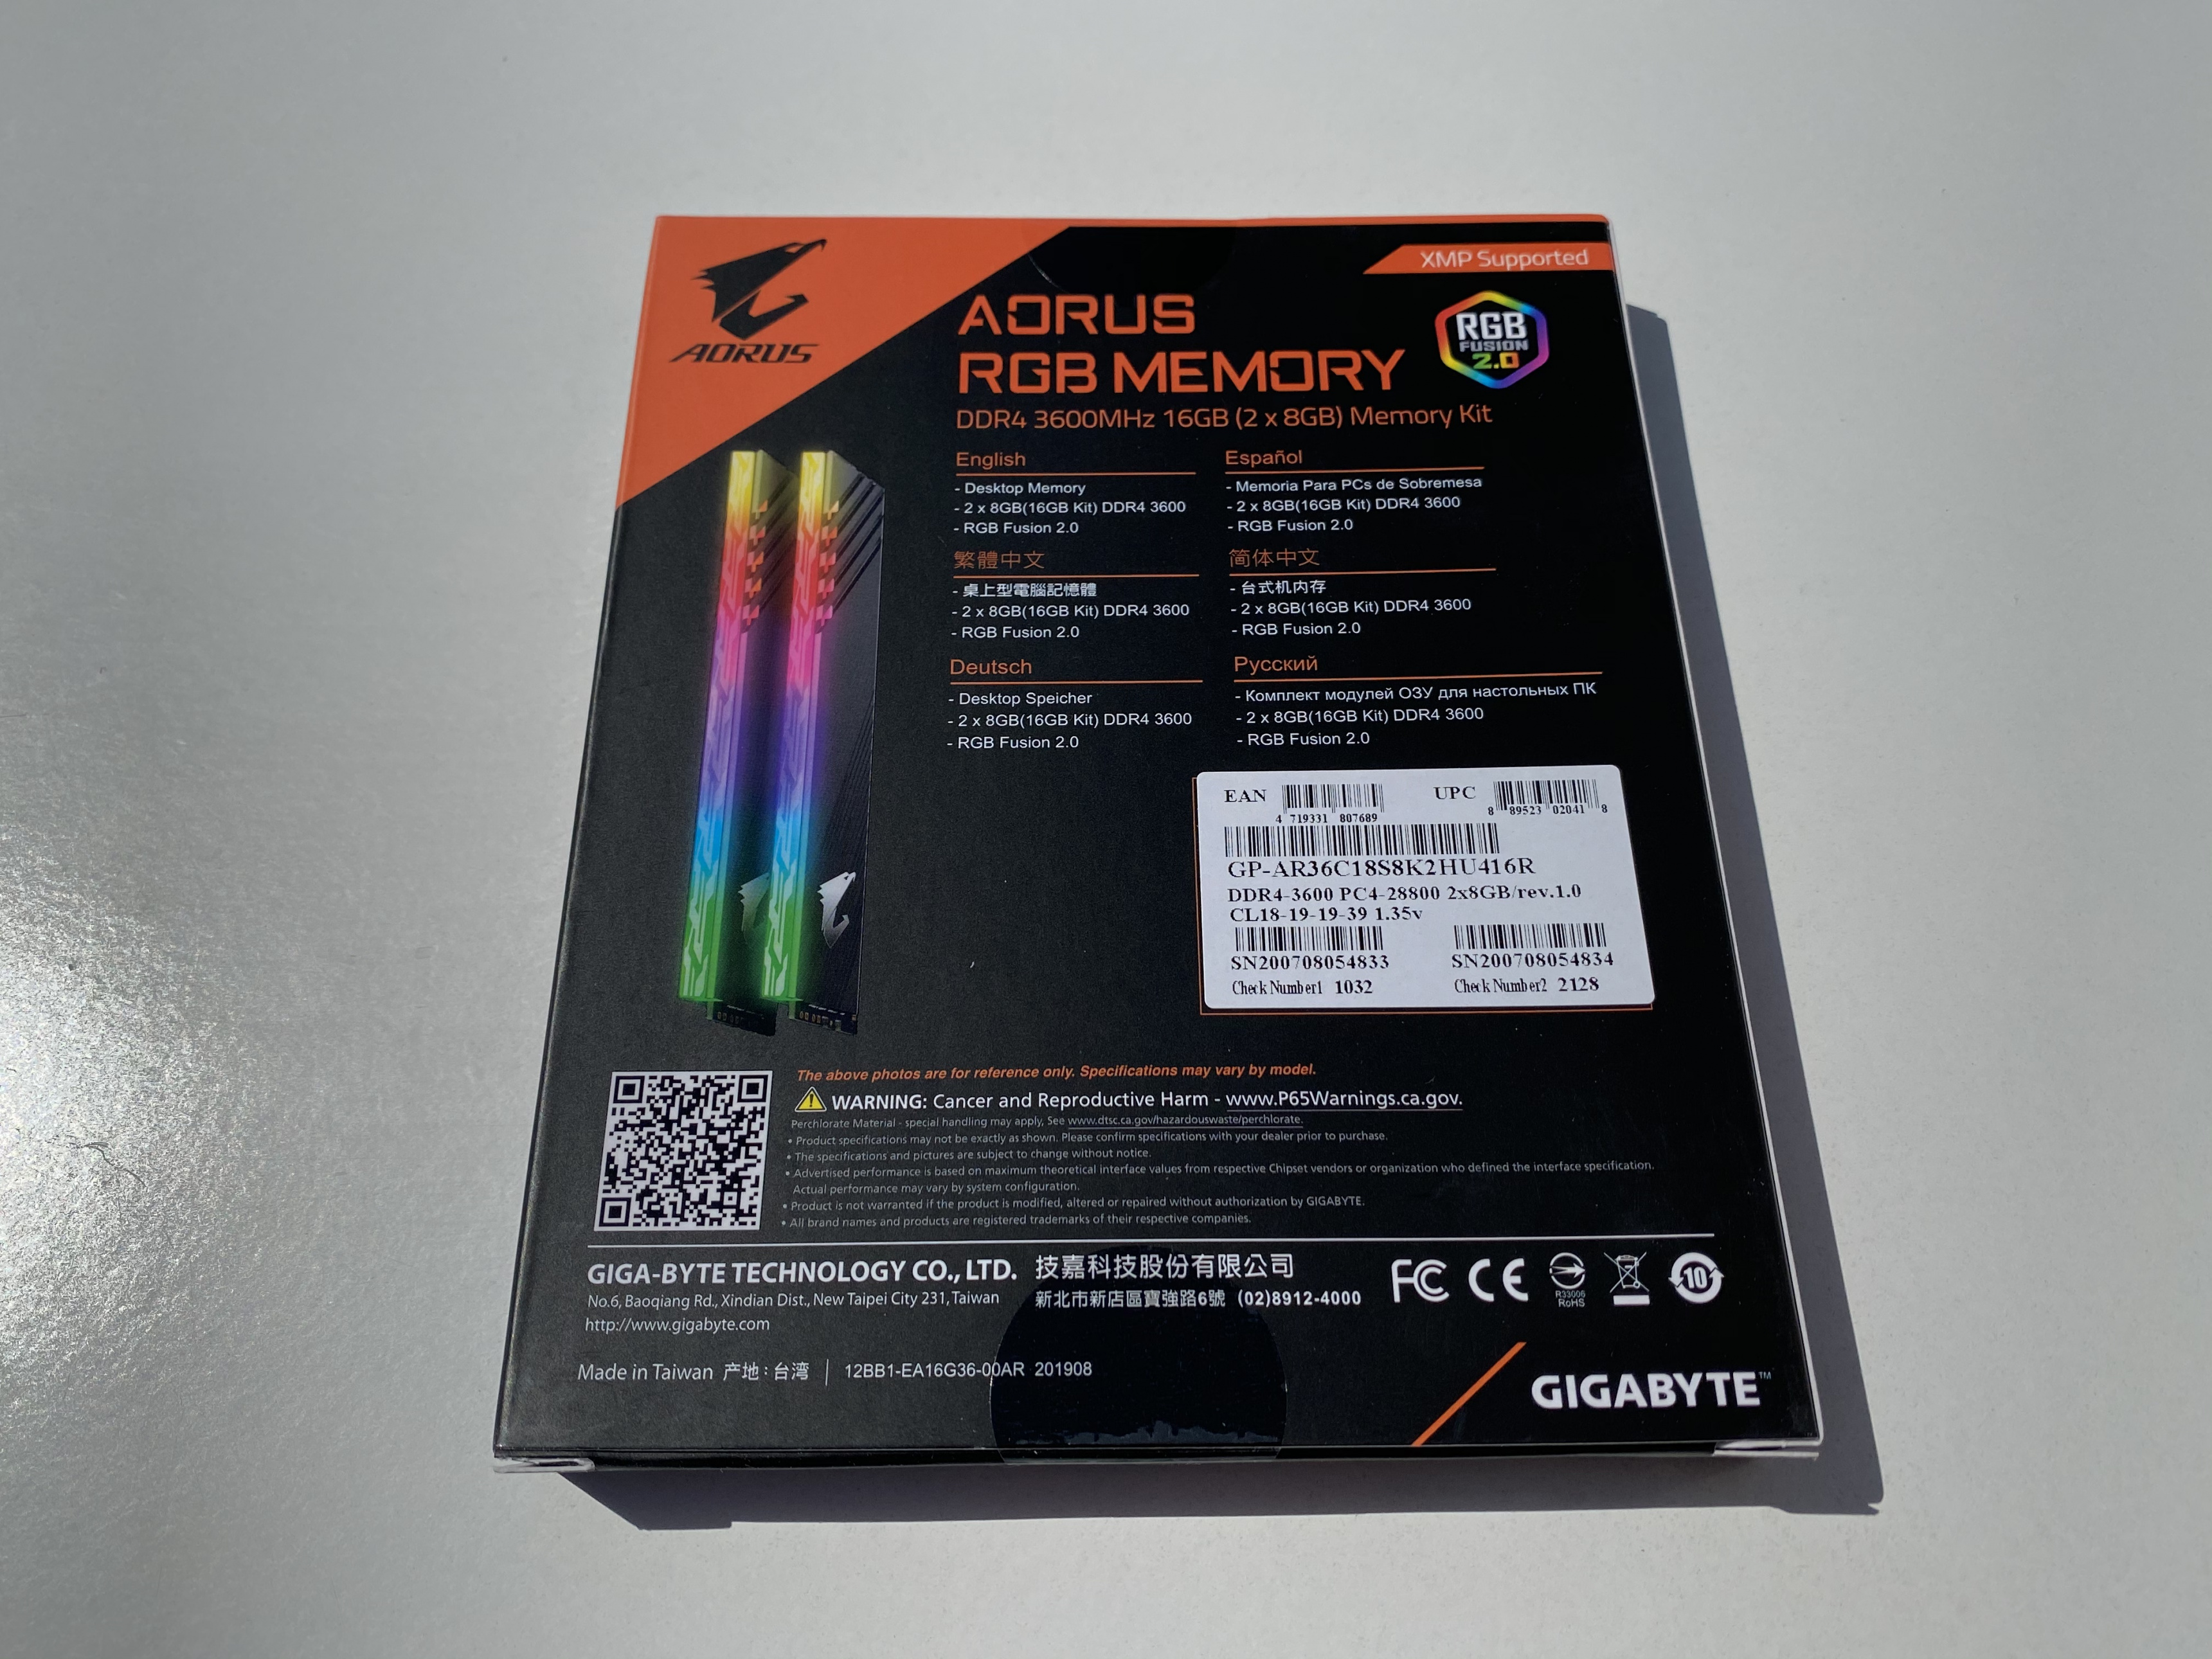 Aorus RGB Memory Review